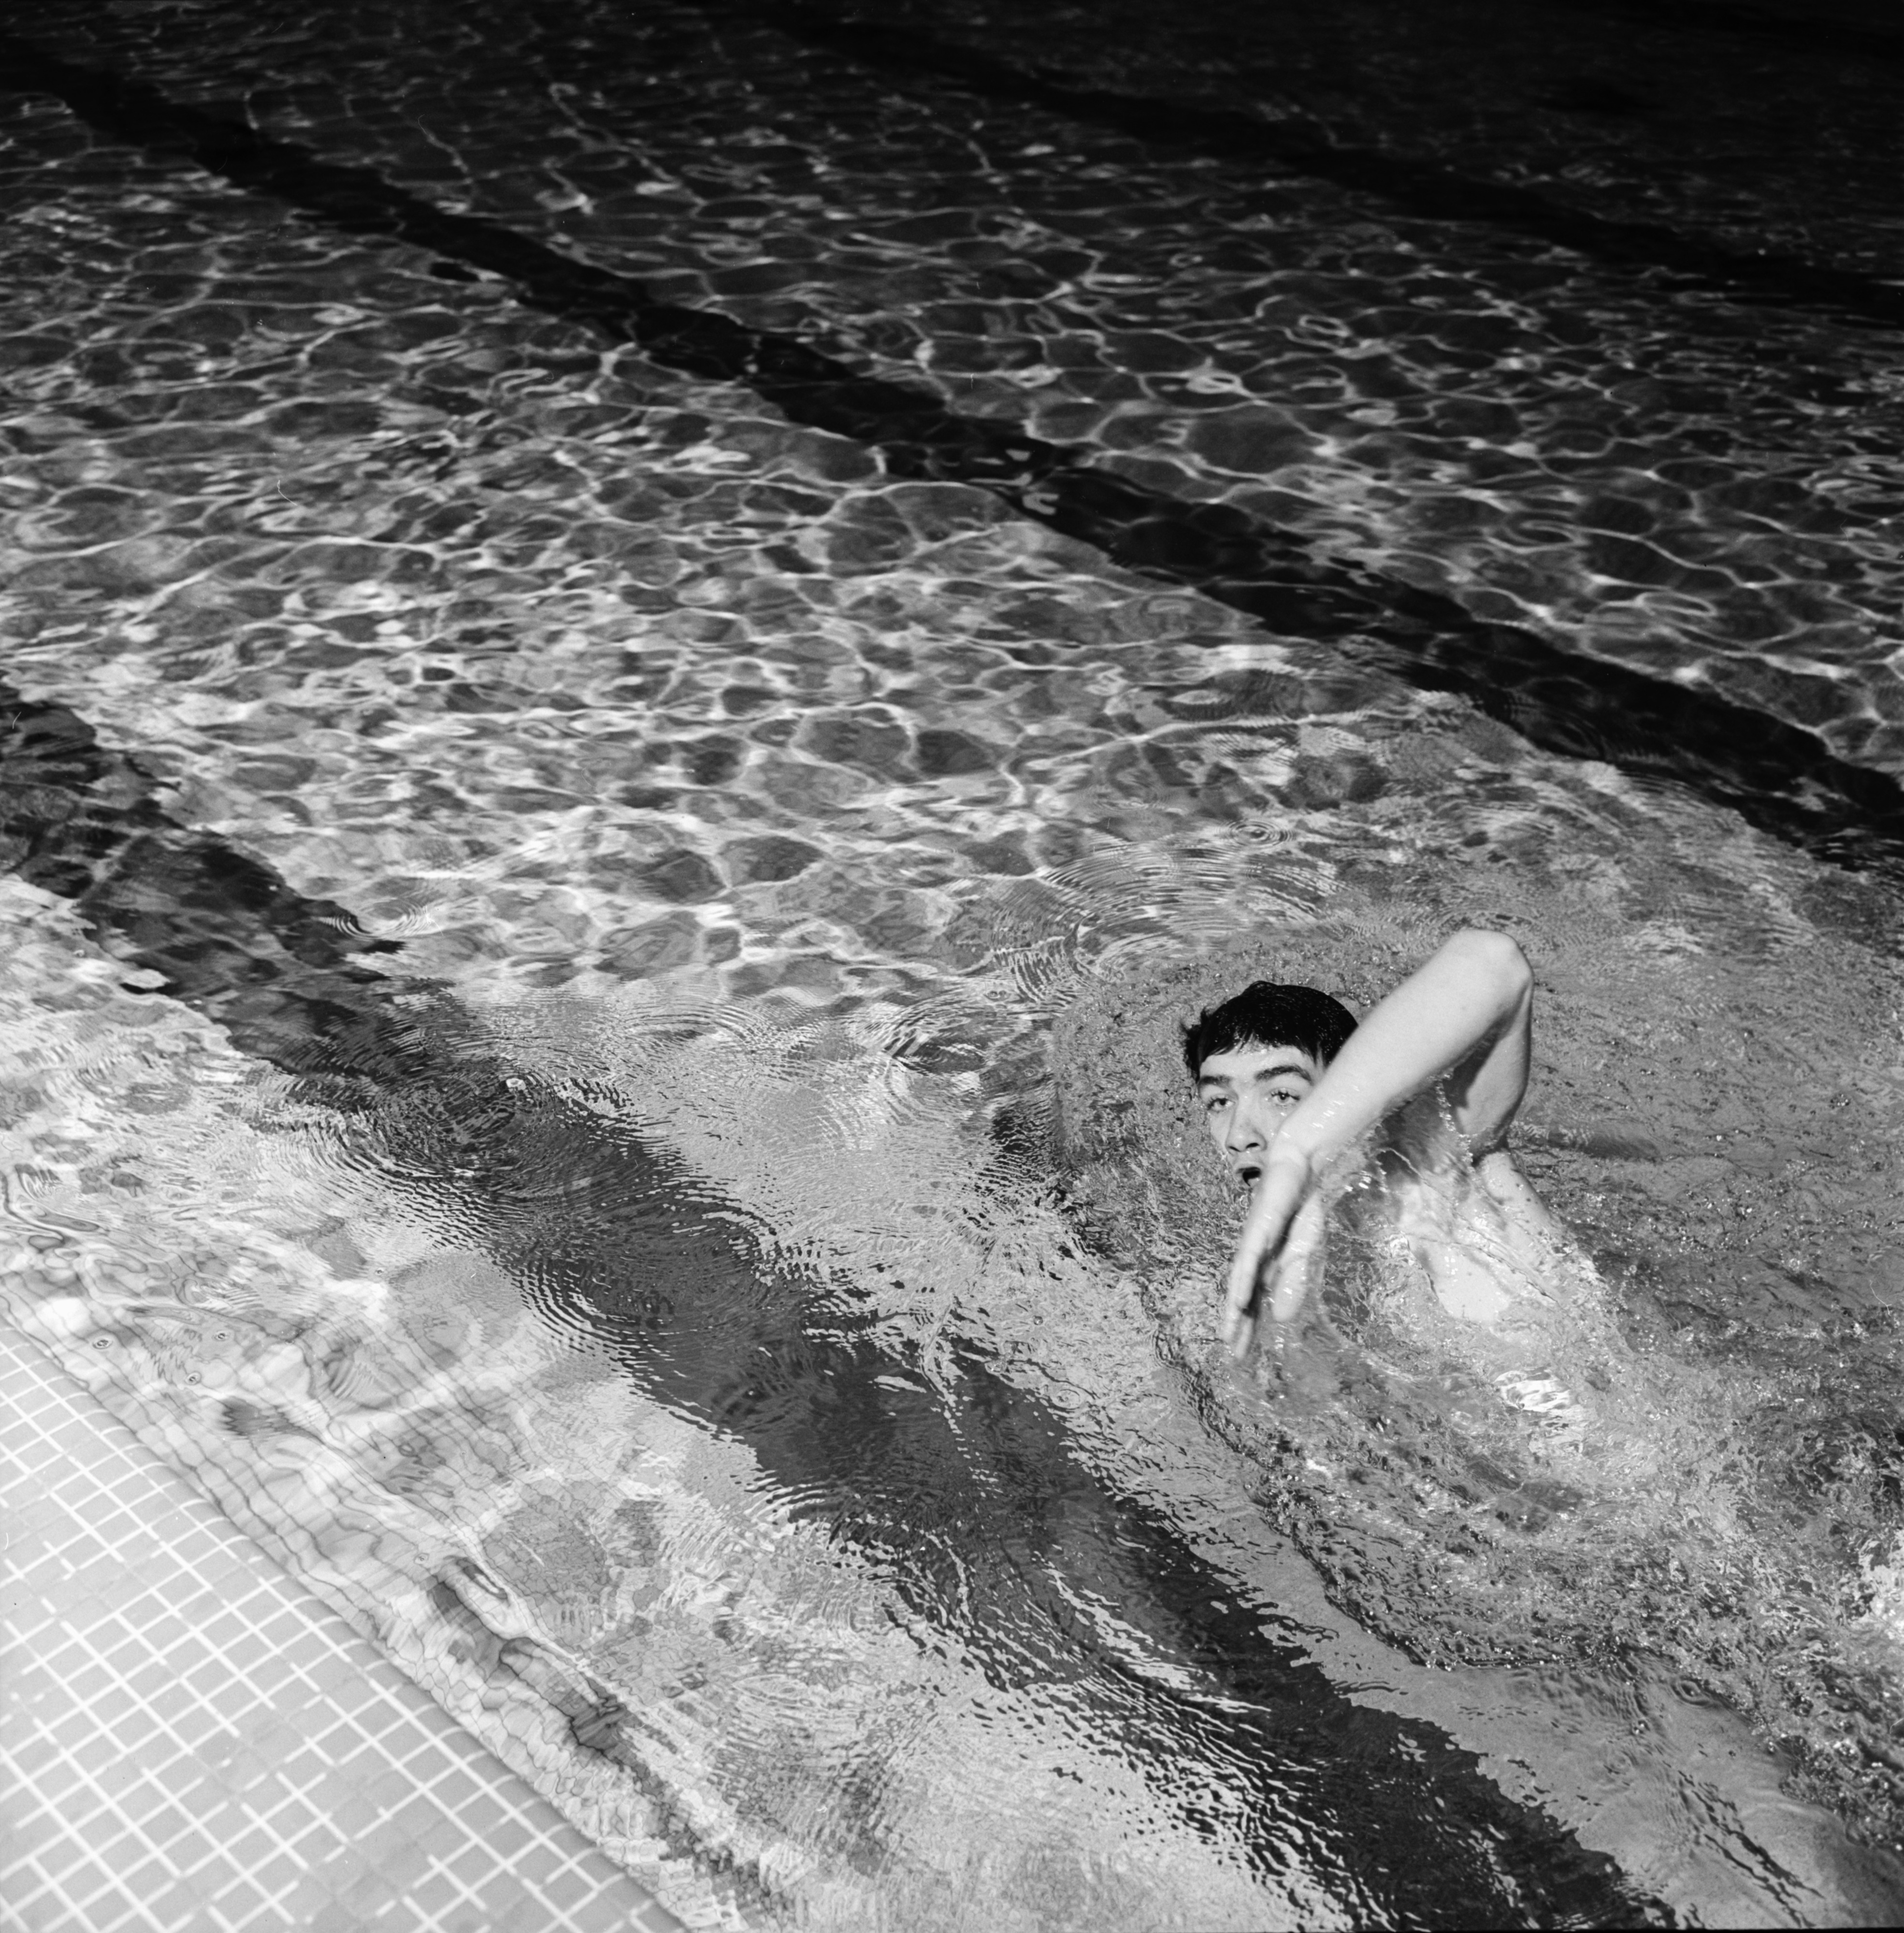 Peter Daly, Huron High School swimming star, January 1970 image